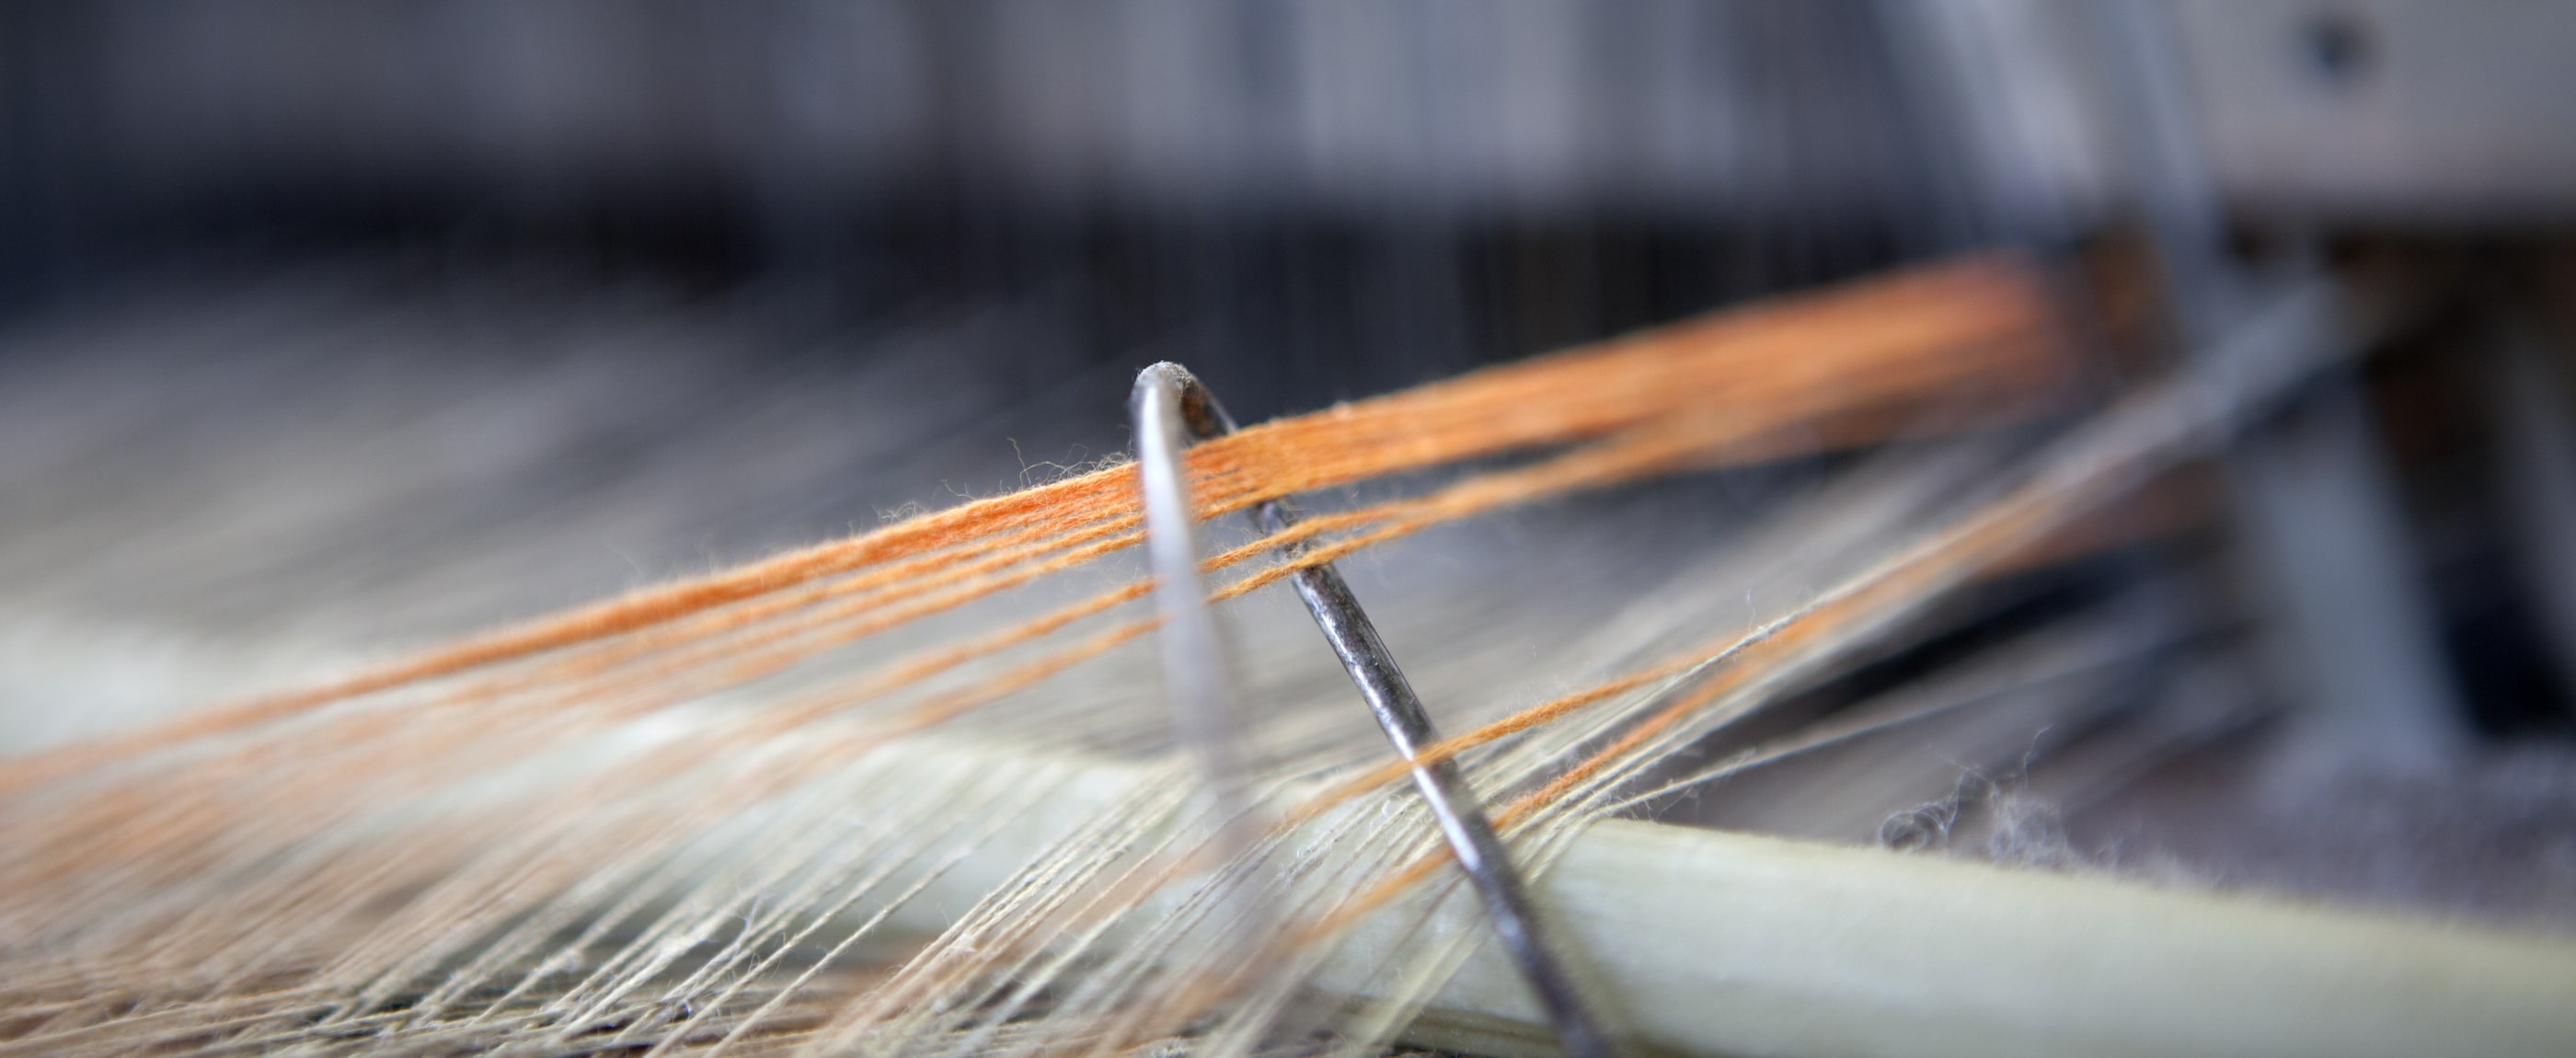 Close-up of fibres on a weaving loom at the Mungo Mill in Plettenberg Bay, South Africa